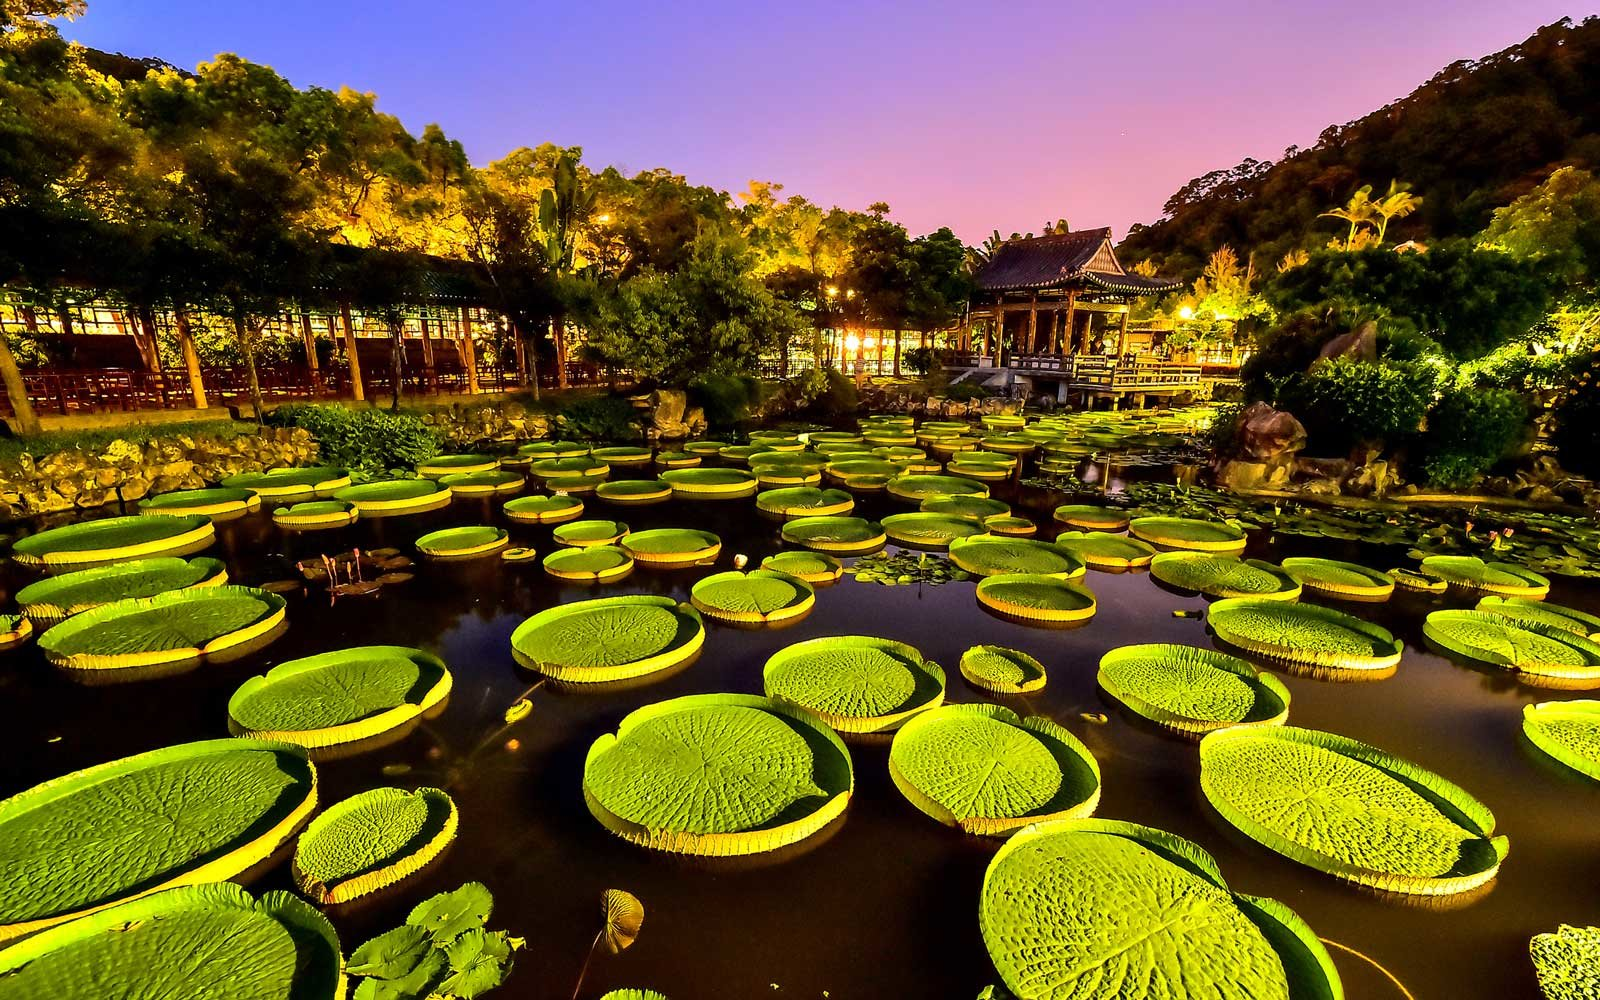 You Can Actually Sit on Giant Lily Pads in This Taipei Park